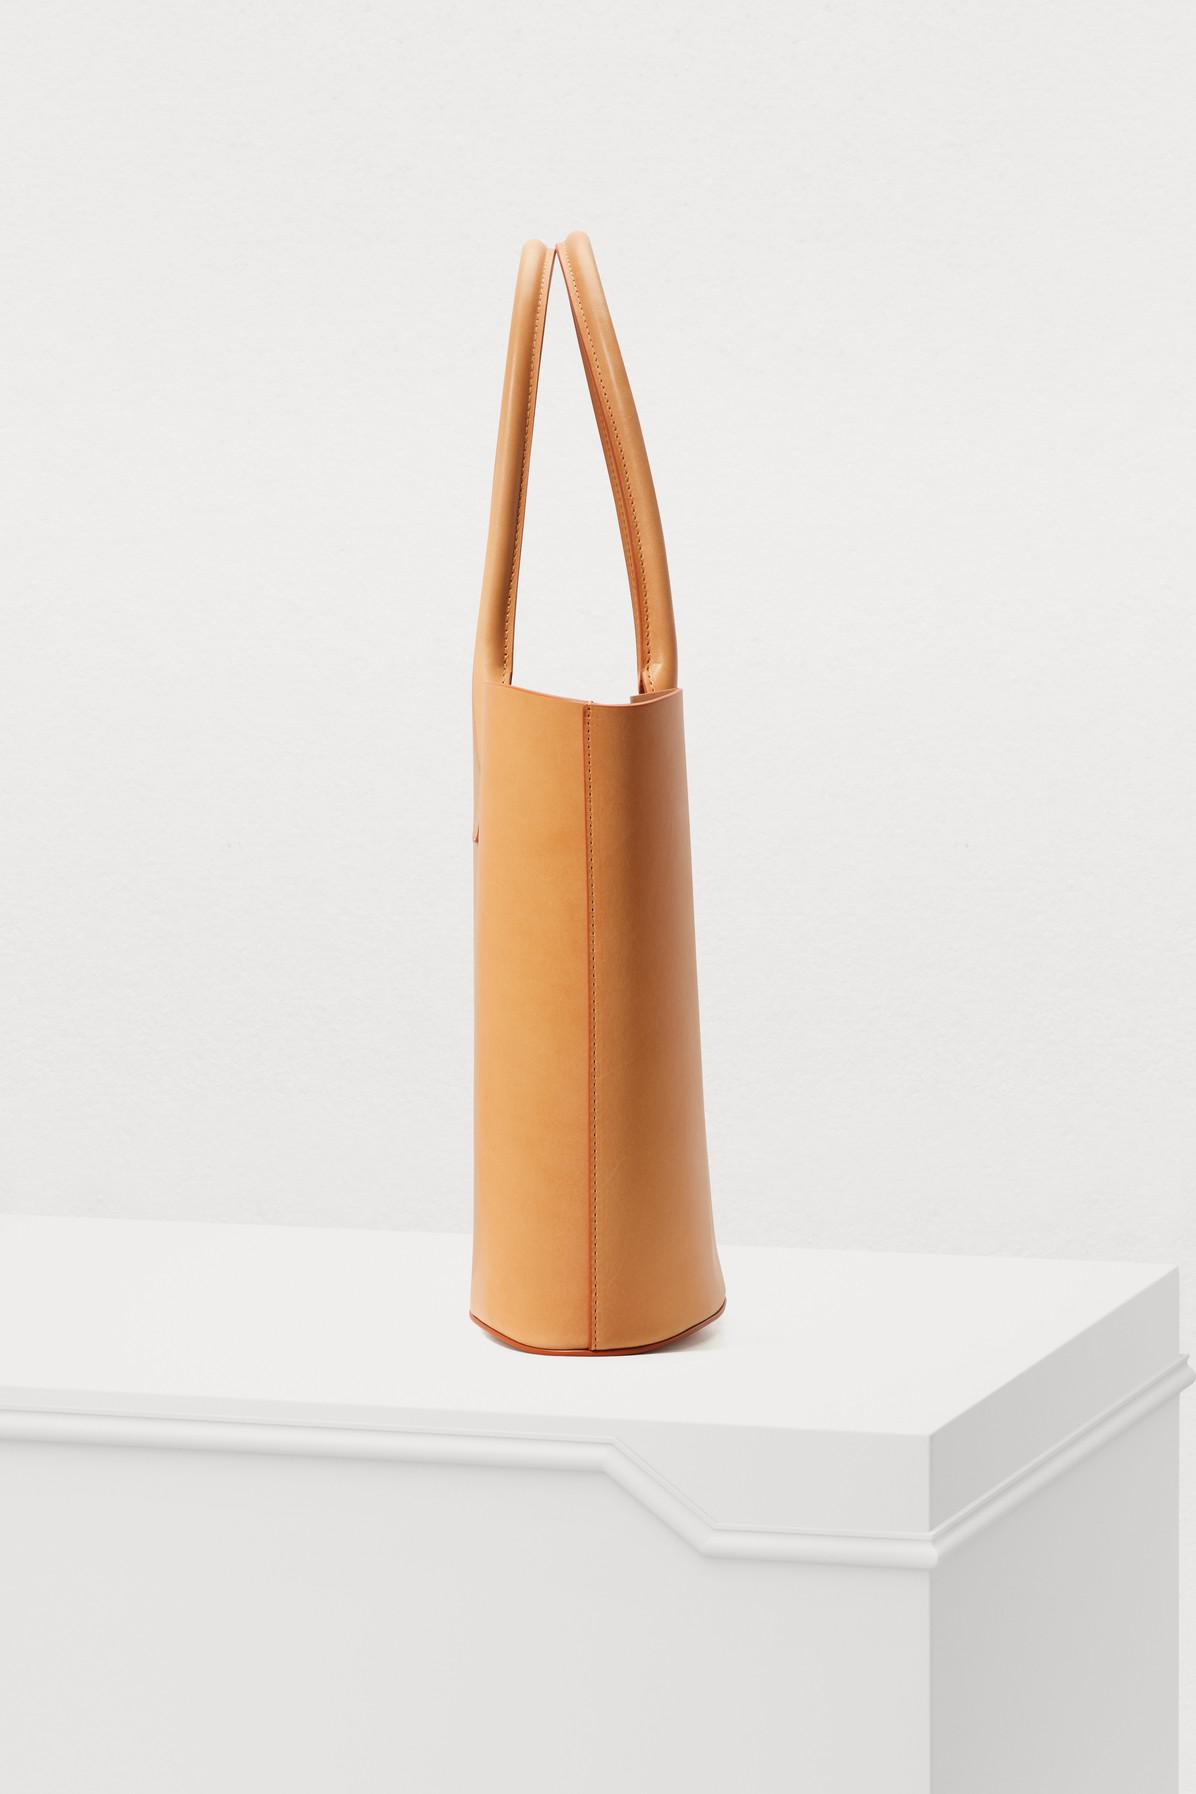 Mansur Gavriel Leather Triangle Vegetable-tanned Tote Bag